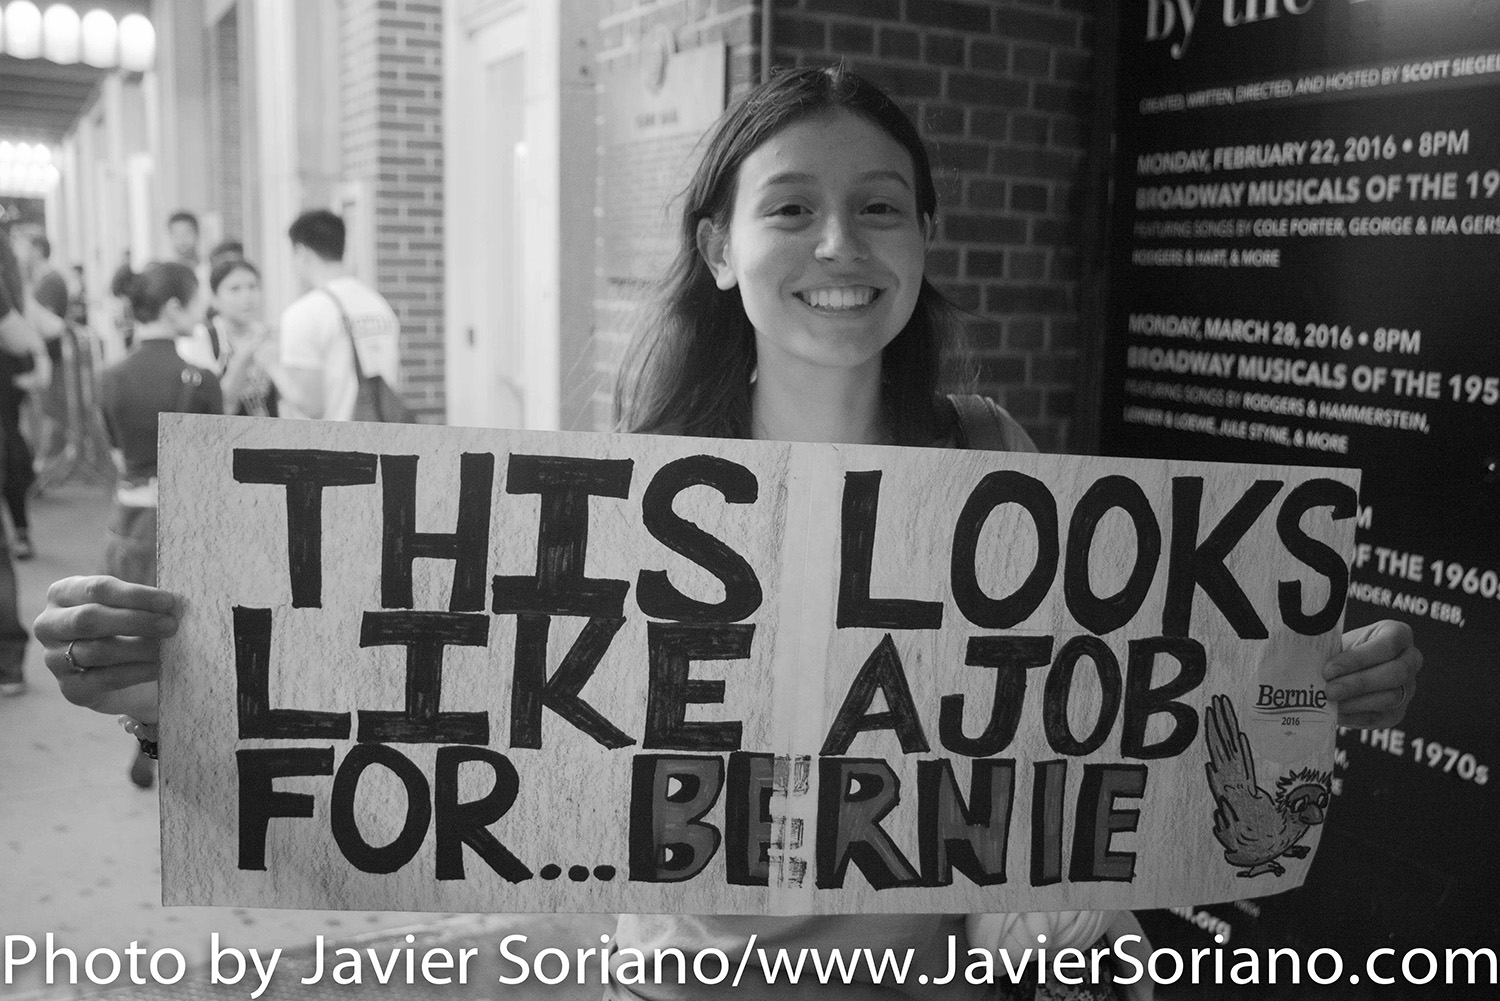 6/23/2016 Town Hall. Manhattan, NYC – Young woman supporting Bernie Sanders. Photo by Javier Soriano/http://www.JavierSoriano.com/